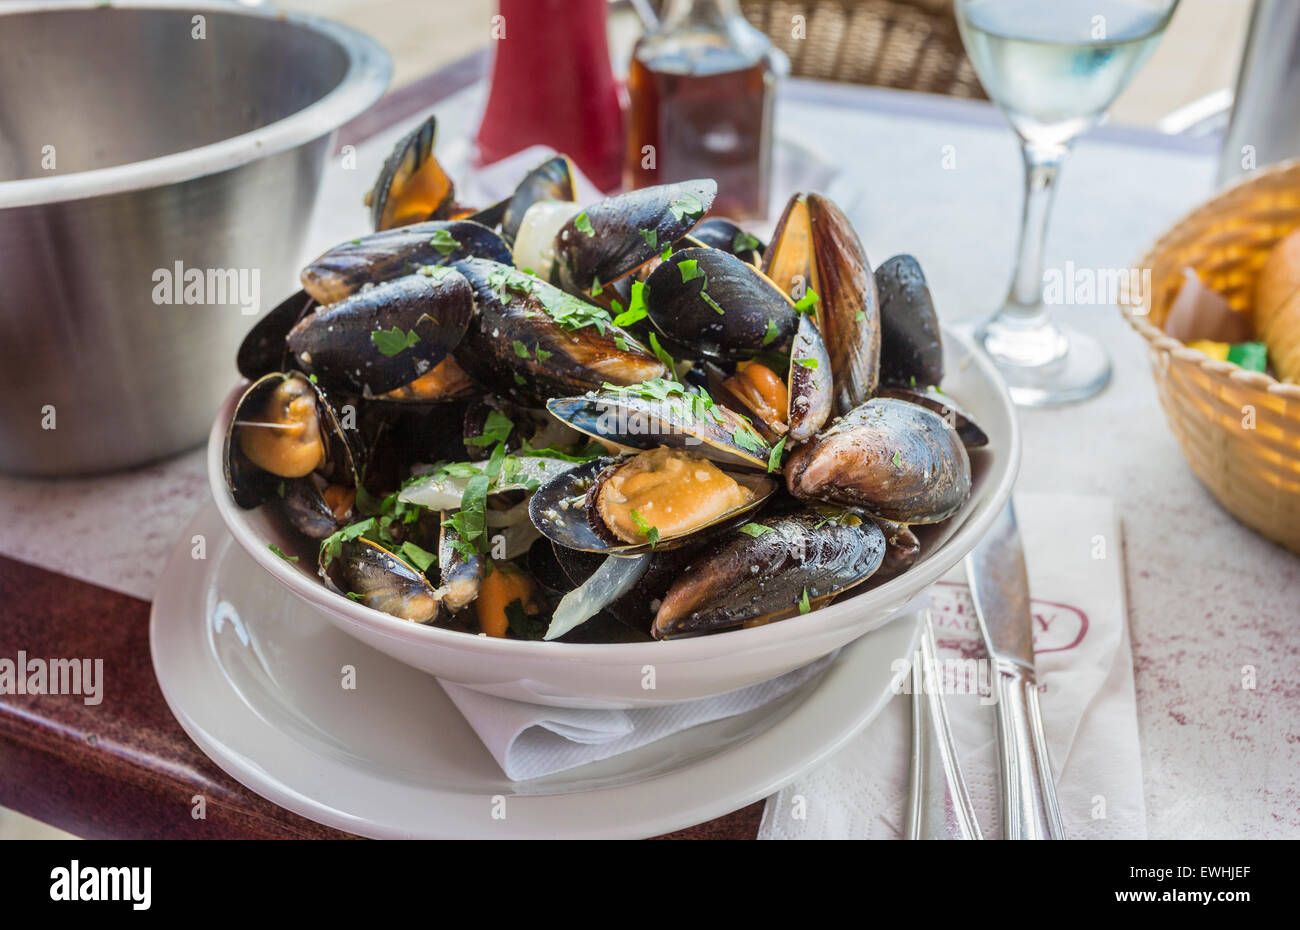 A bowl of delicious moules mariniere for lunch in a seafood restaurant in Brighton, East Sussex, UK - Stock Image